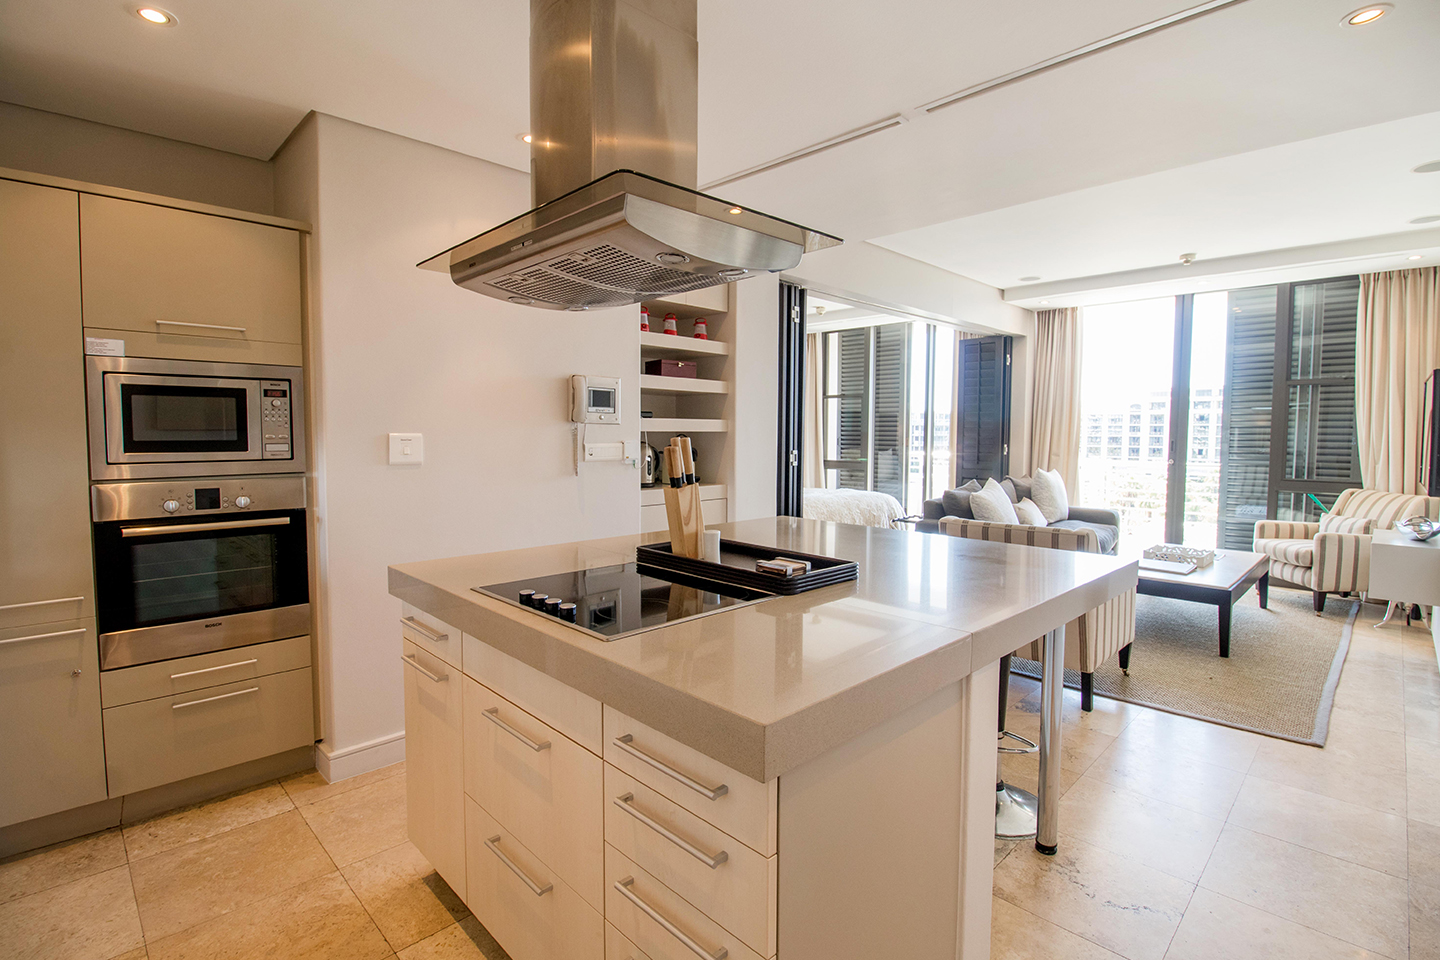 Kitchen at Waterfront Village - Citybase Apartments